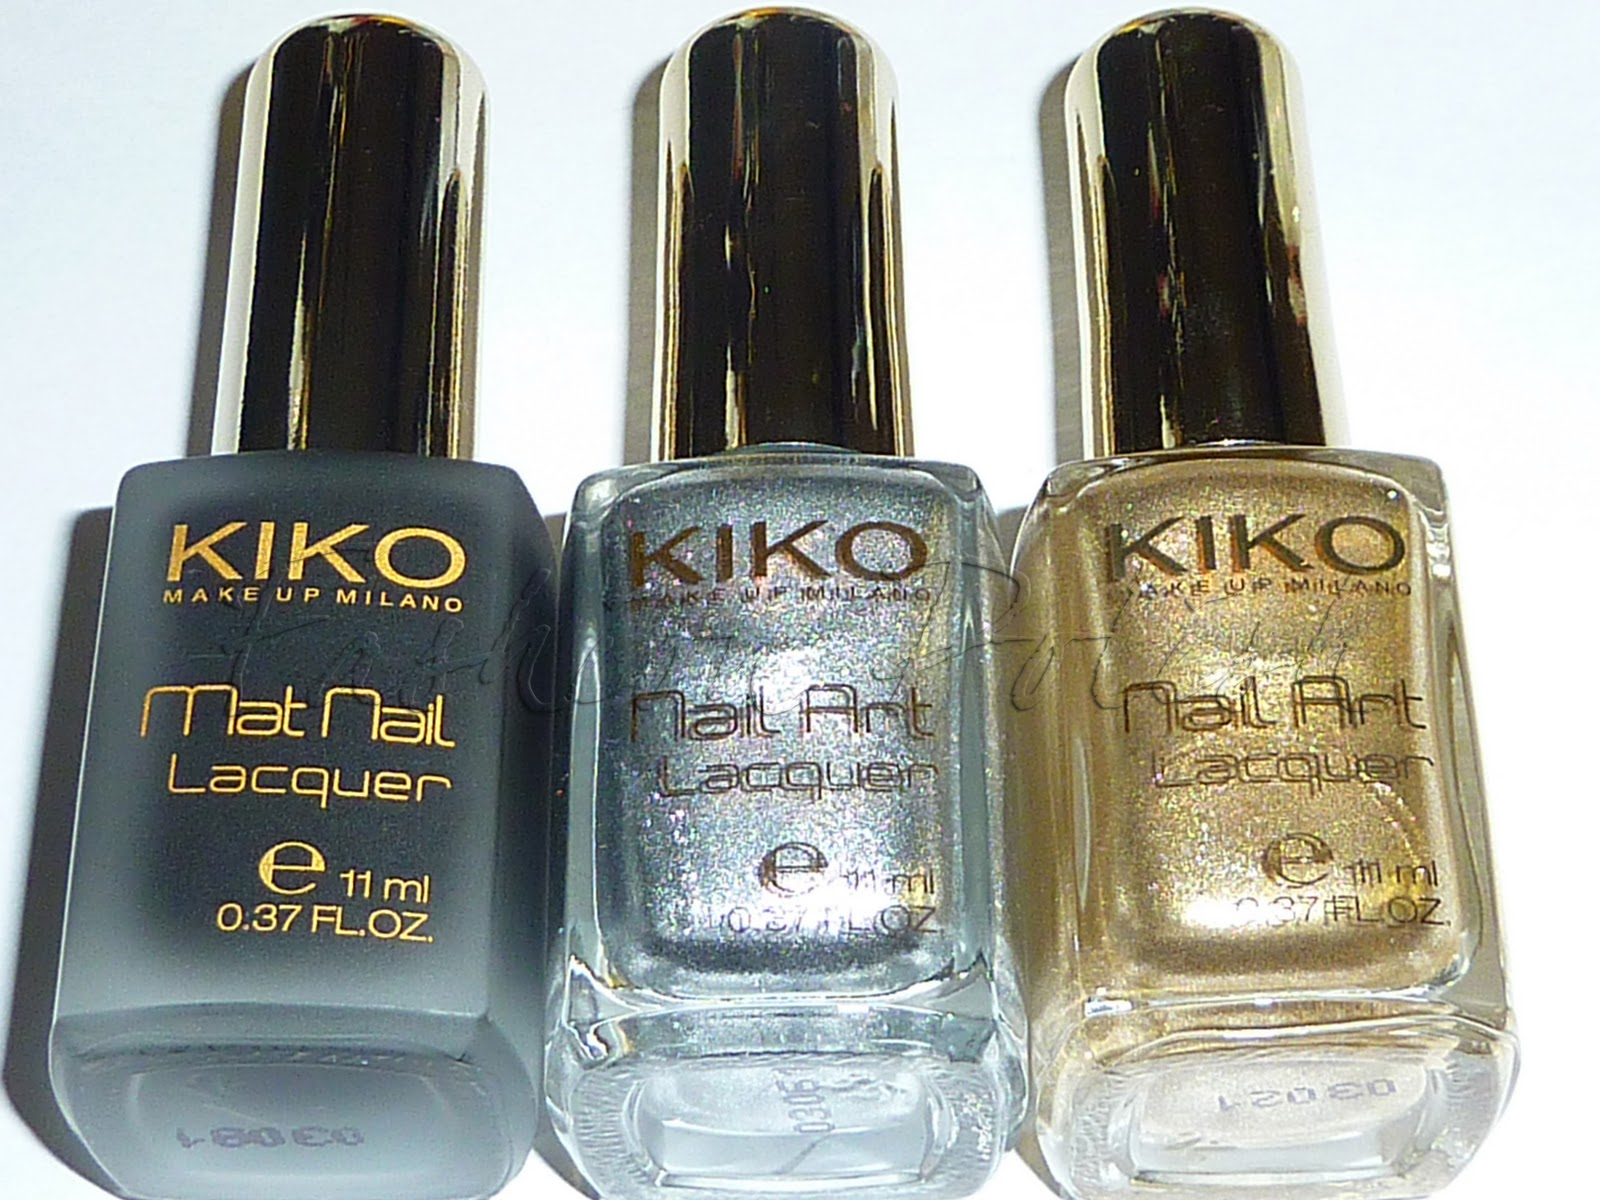 Fashion Polish: Gosh and Kiko Spam